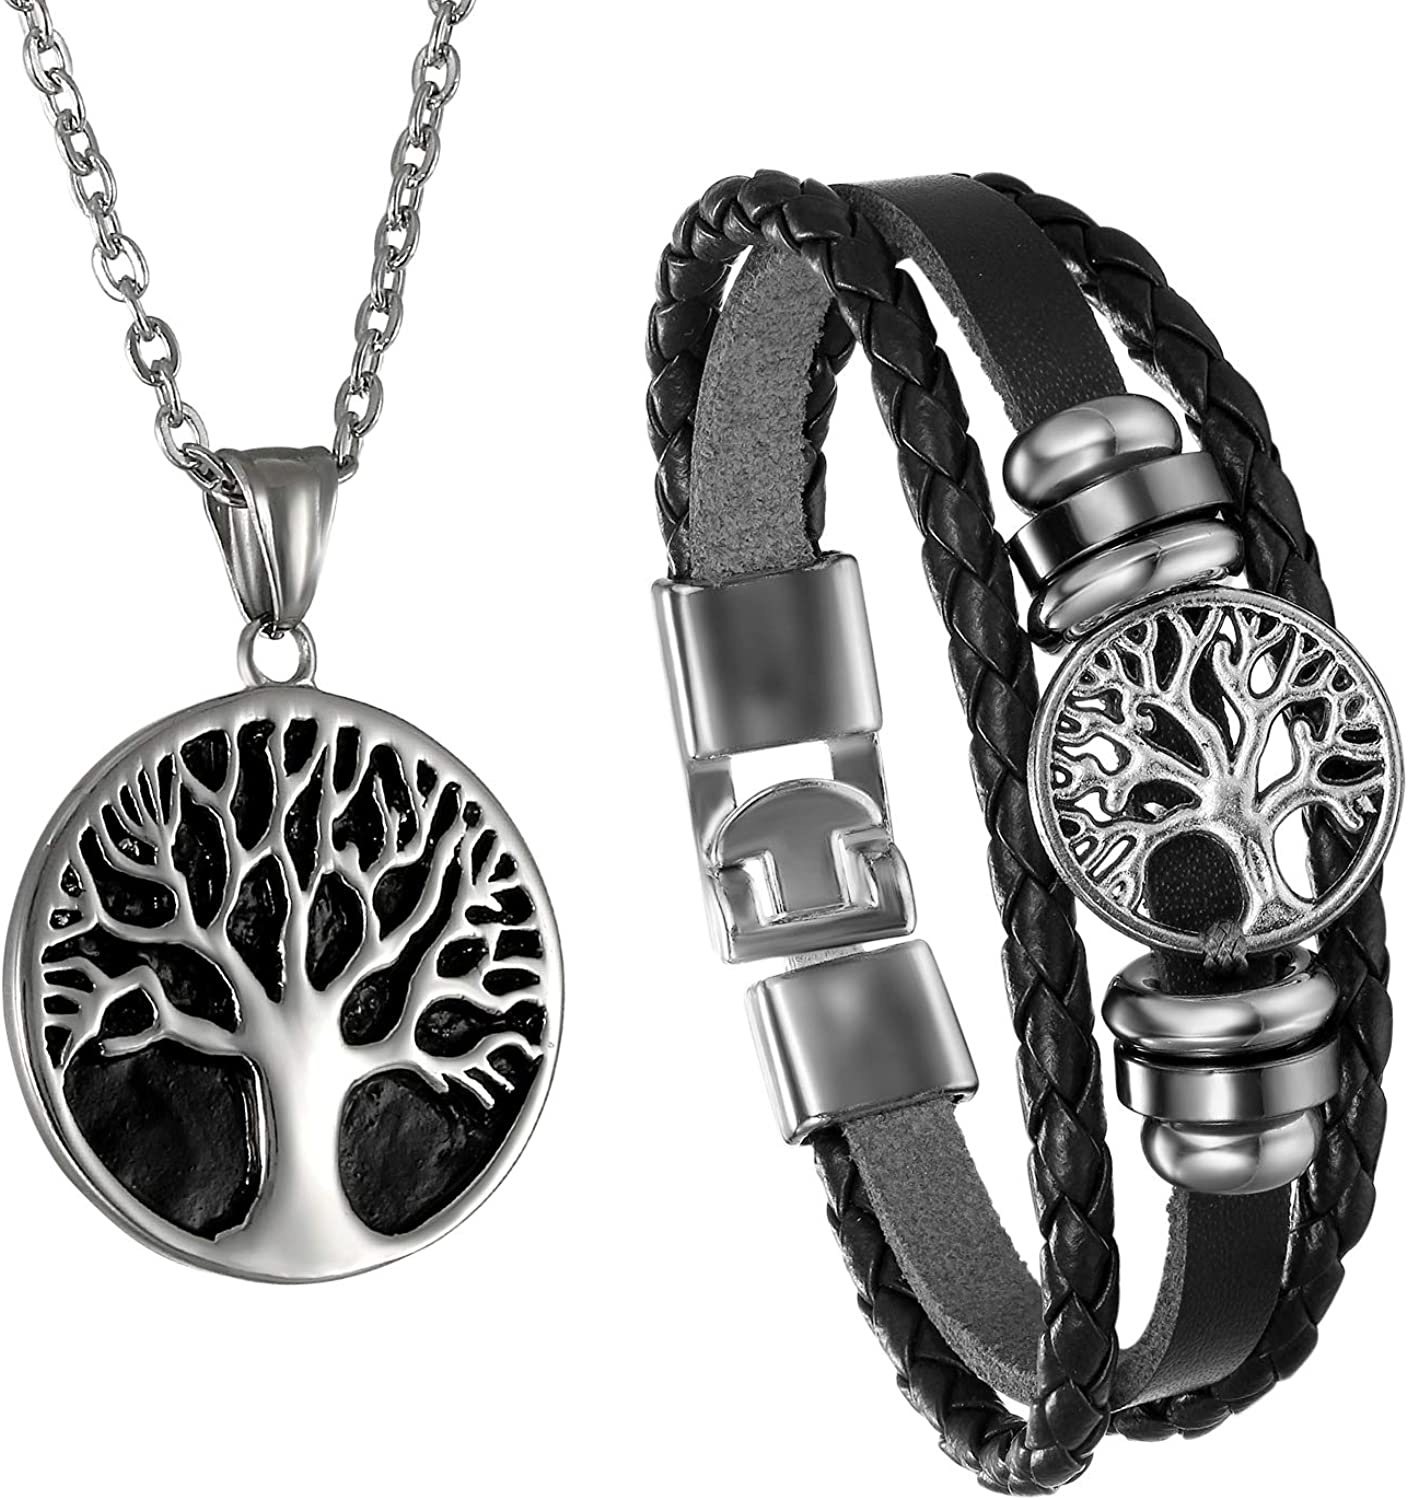 Cupimatch Men Tree of Life Symbol Pendant Necklace Leather Bracelet, Stainless Steel 22 inch Chian Jewelry Set